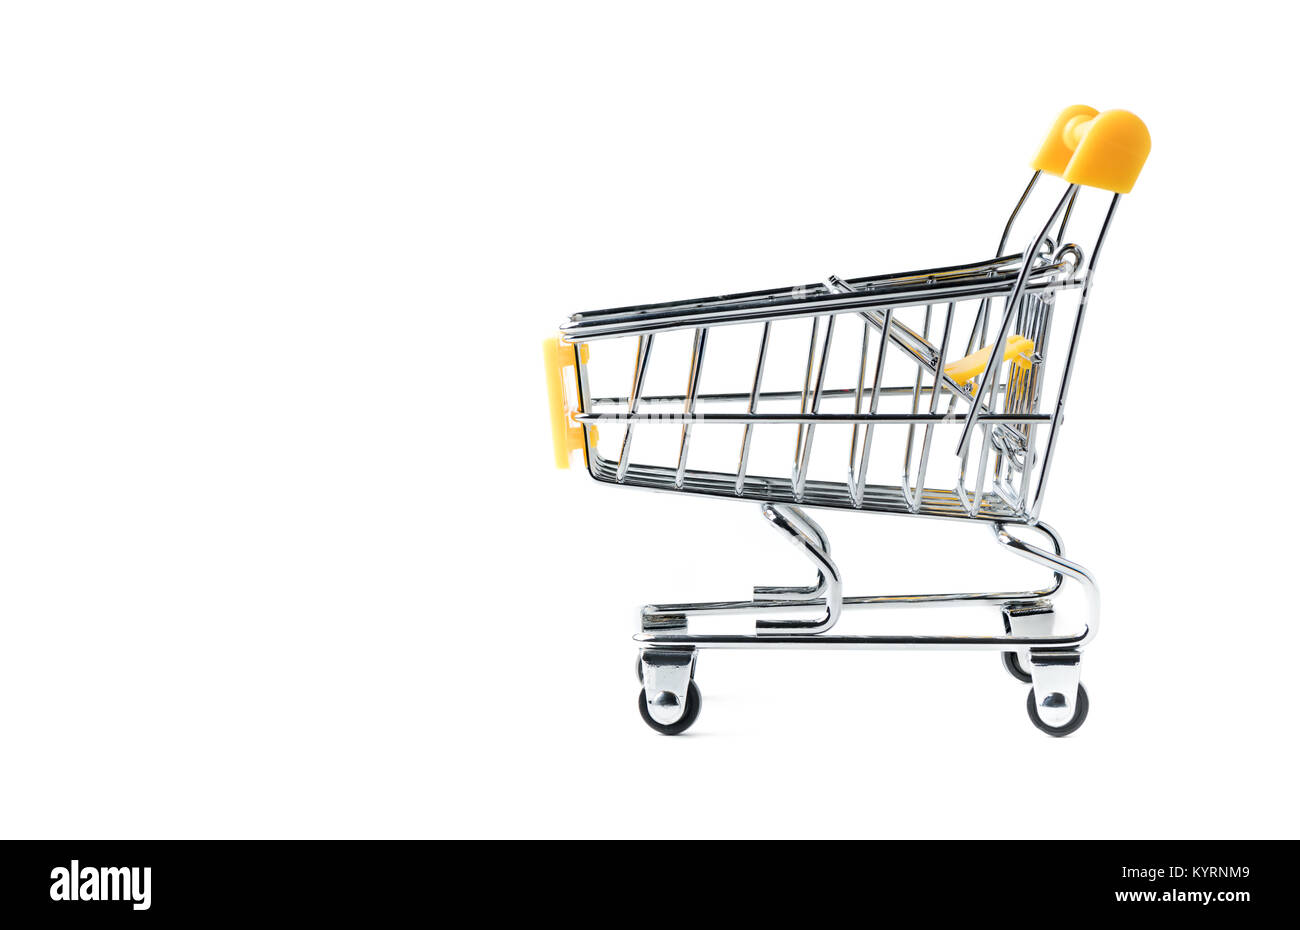 Yellow shopping Cart isolated on white background, shopping concept - Stock Image